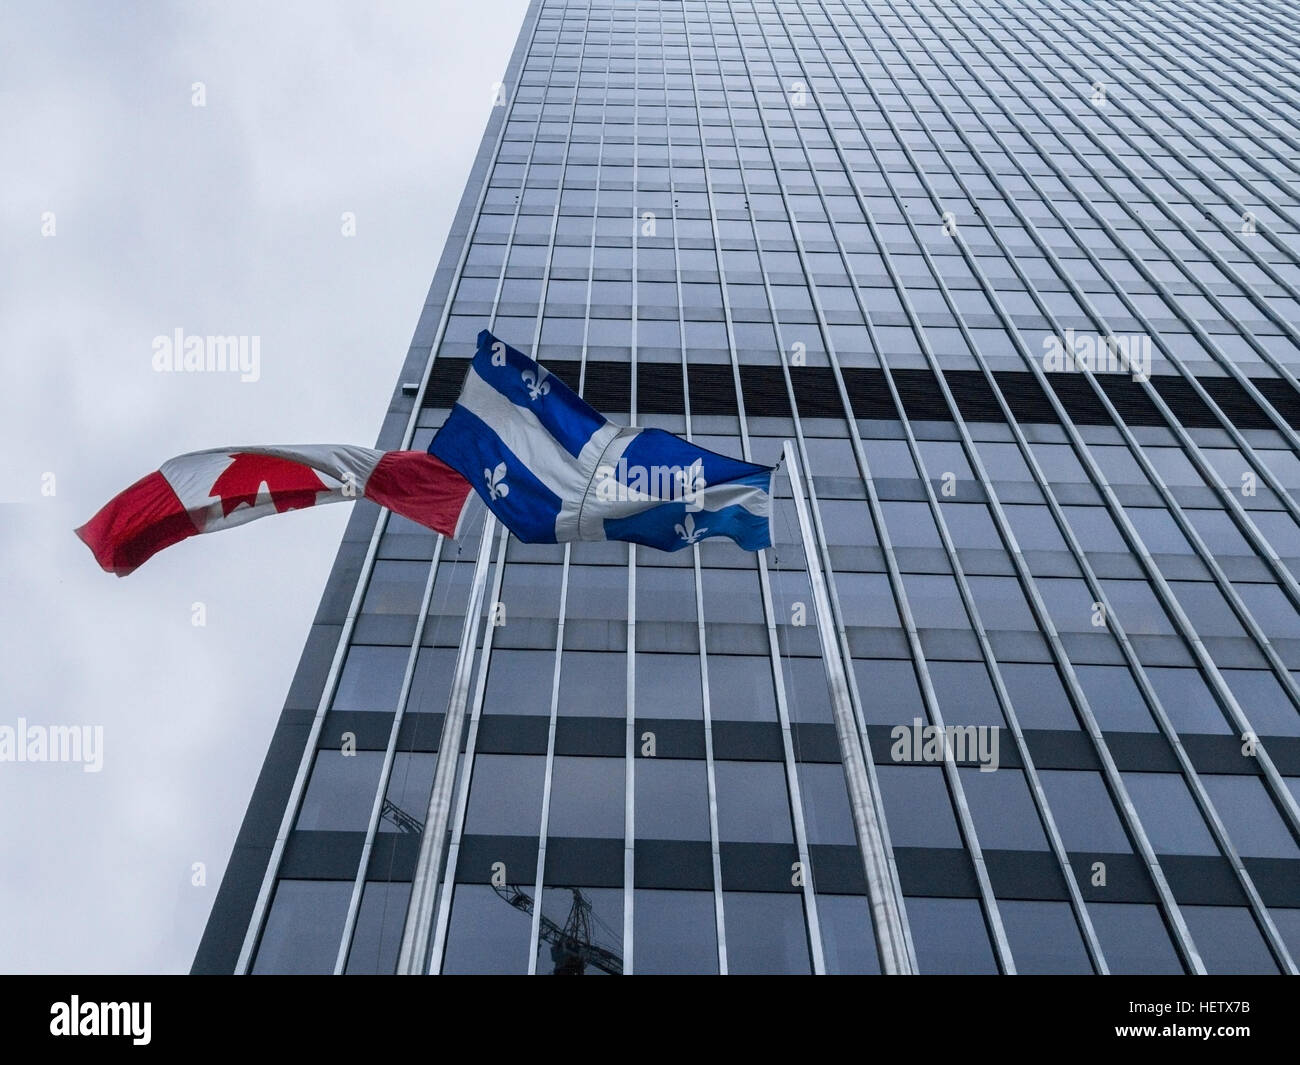 Canadian and Quebec flags in front of a skysrcaper - Stock Image